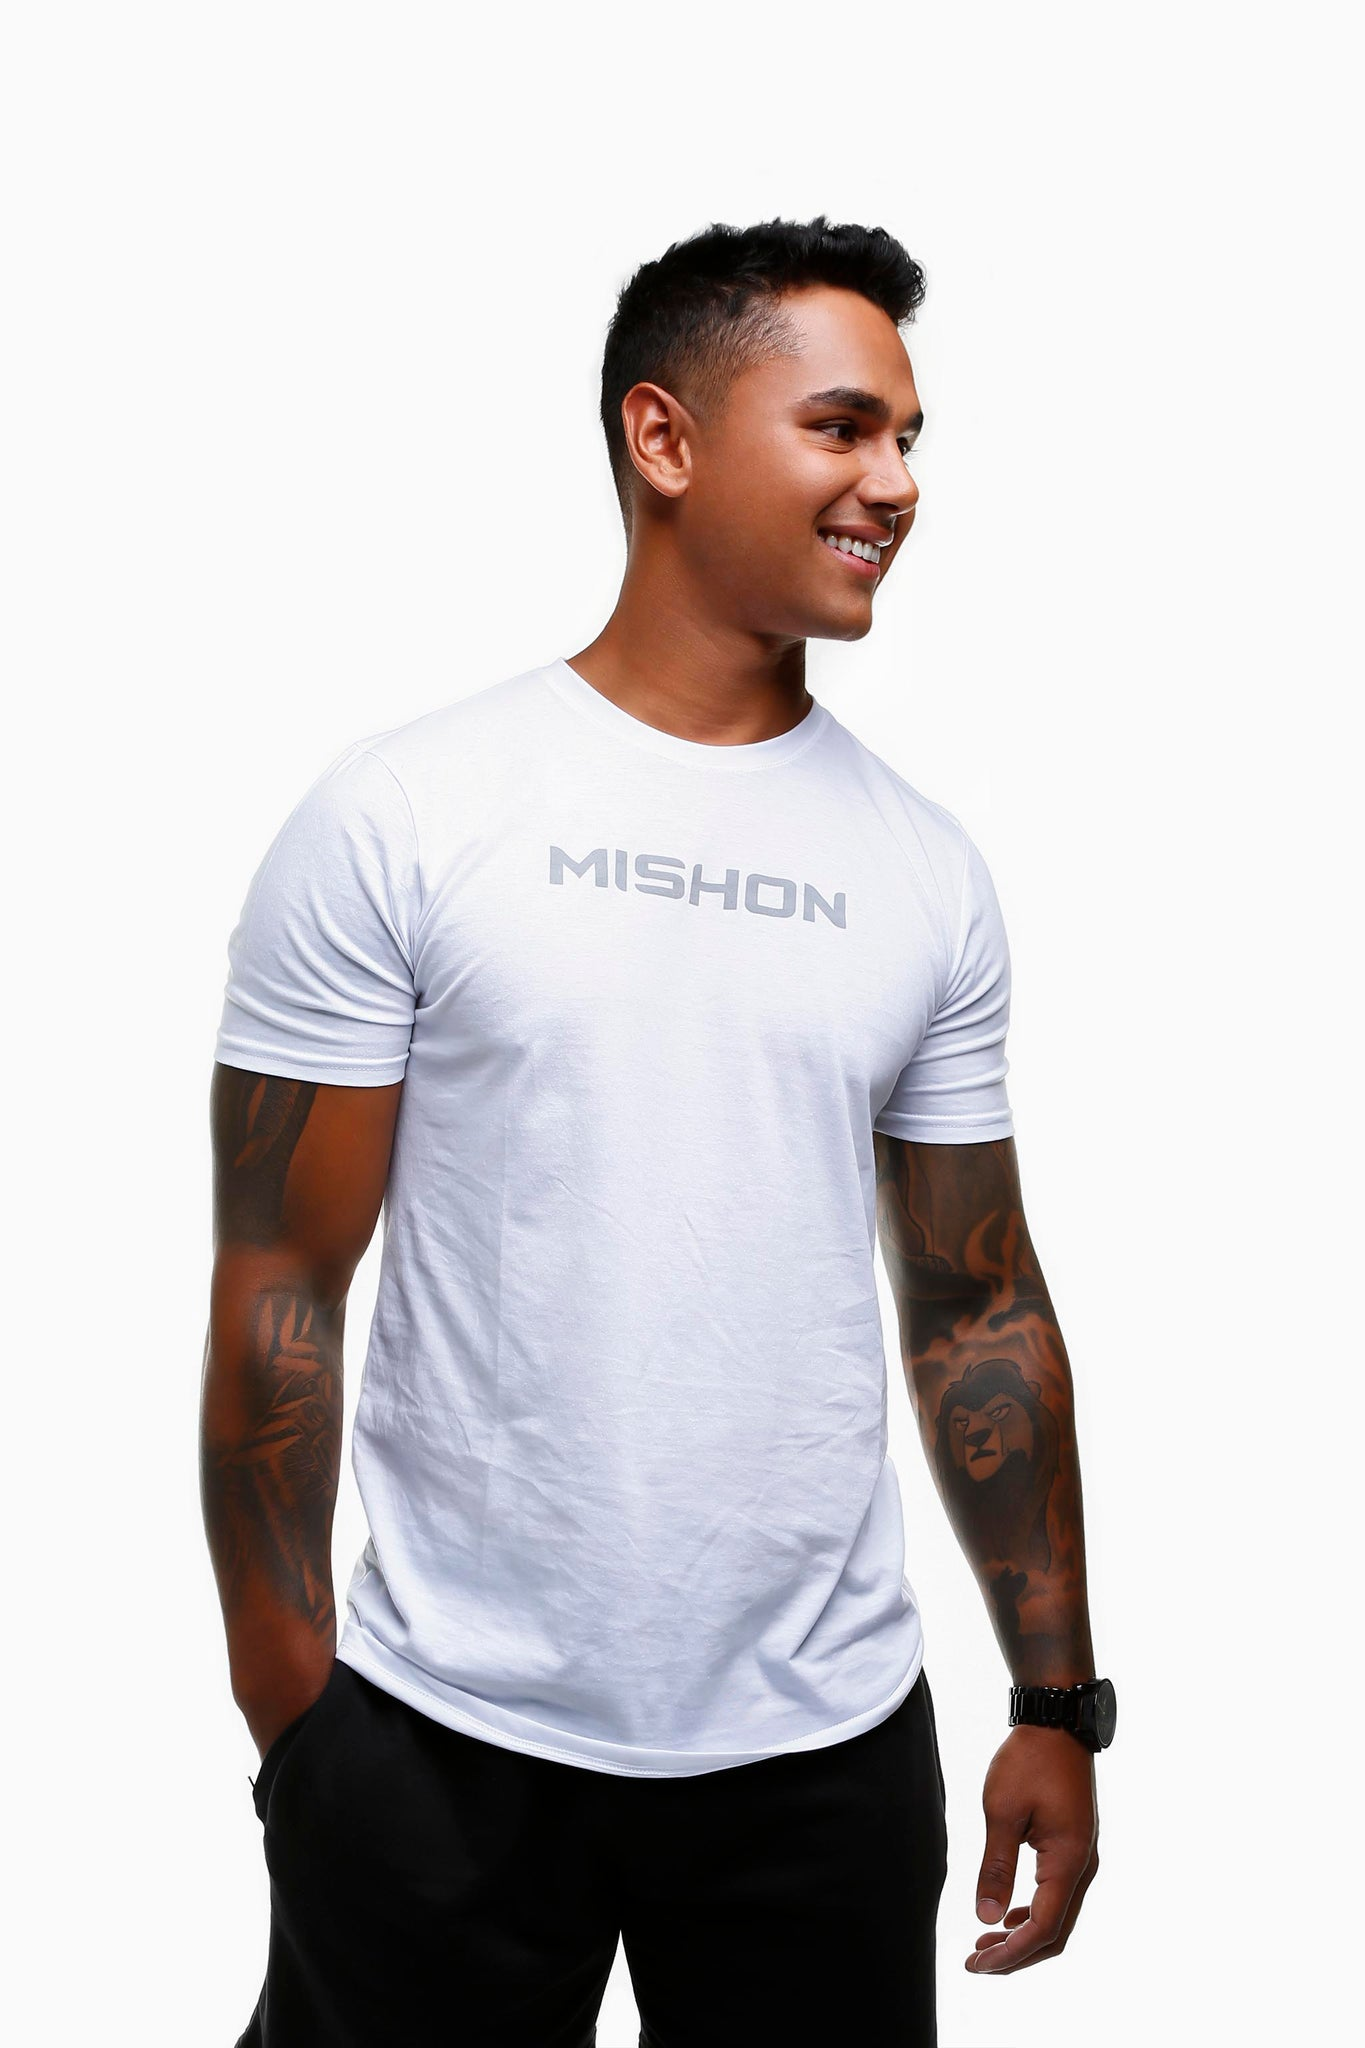 Mishon Grey on White Tee